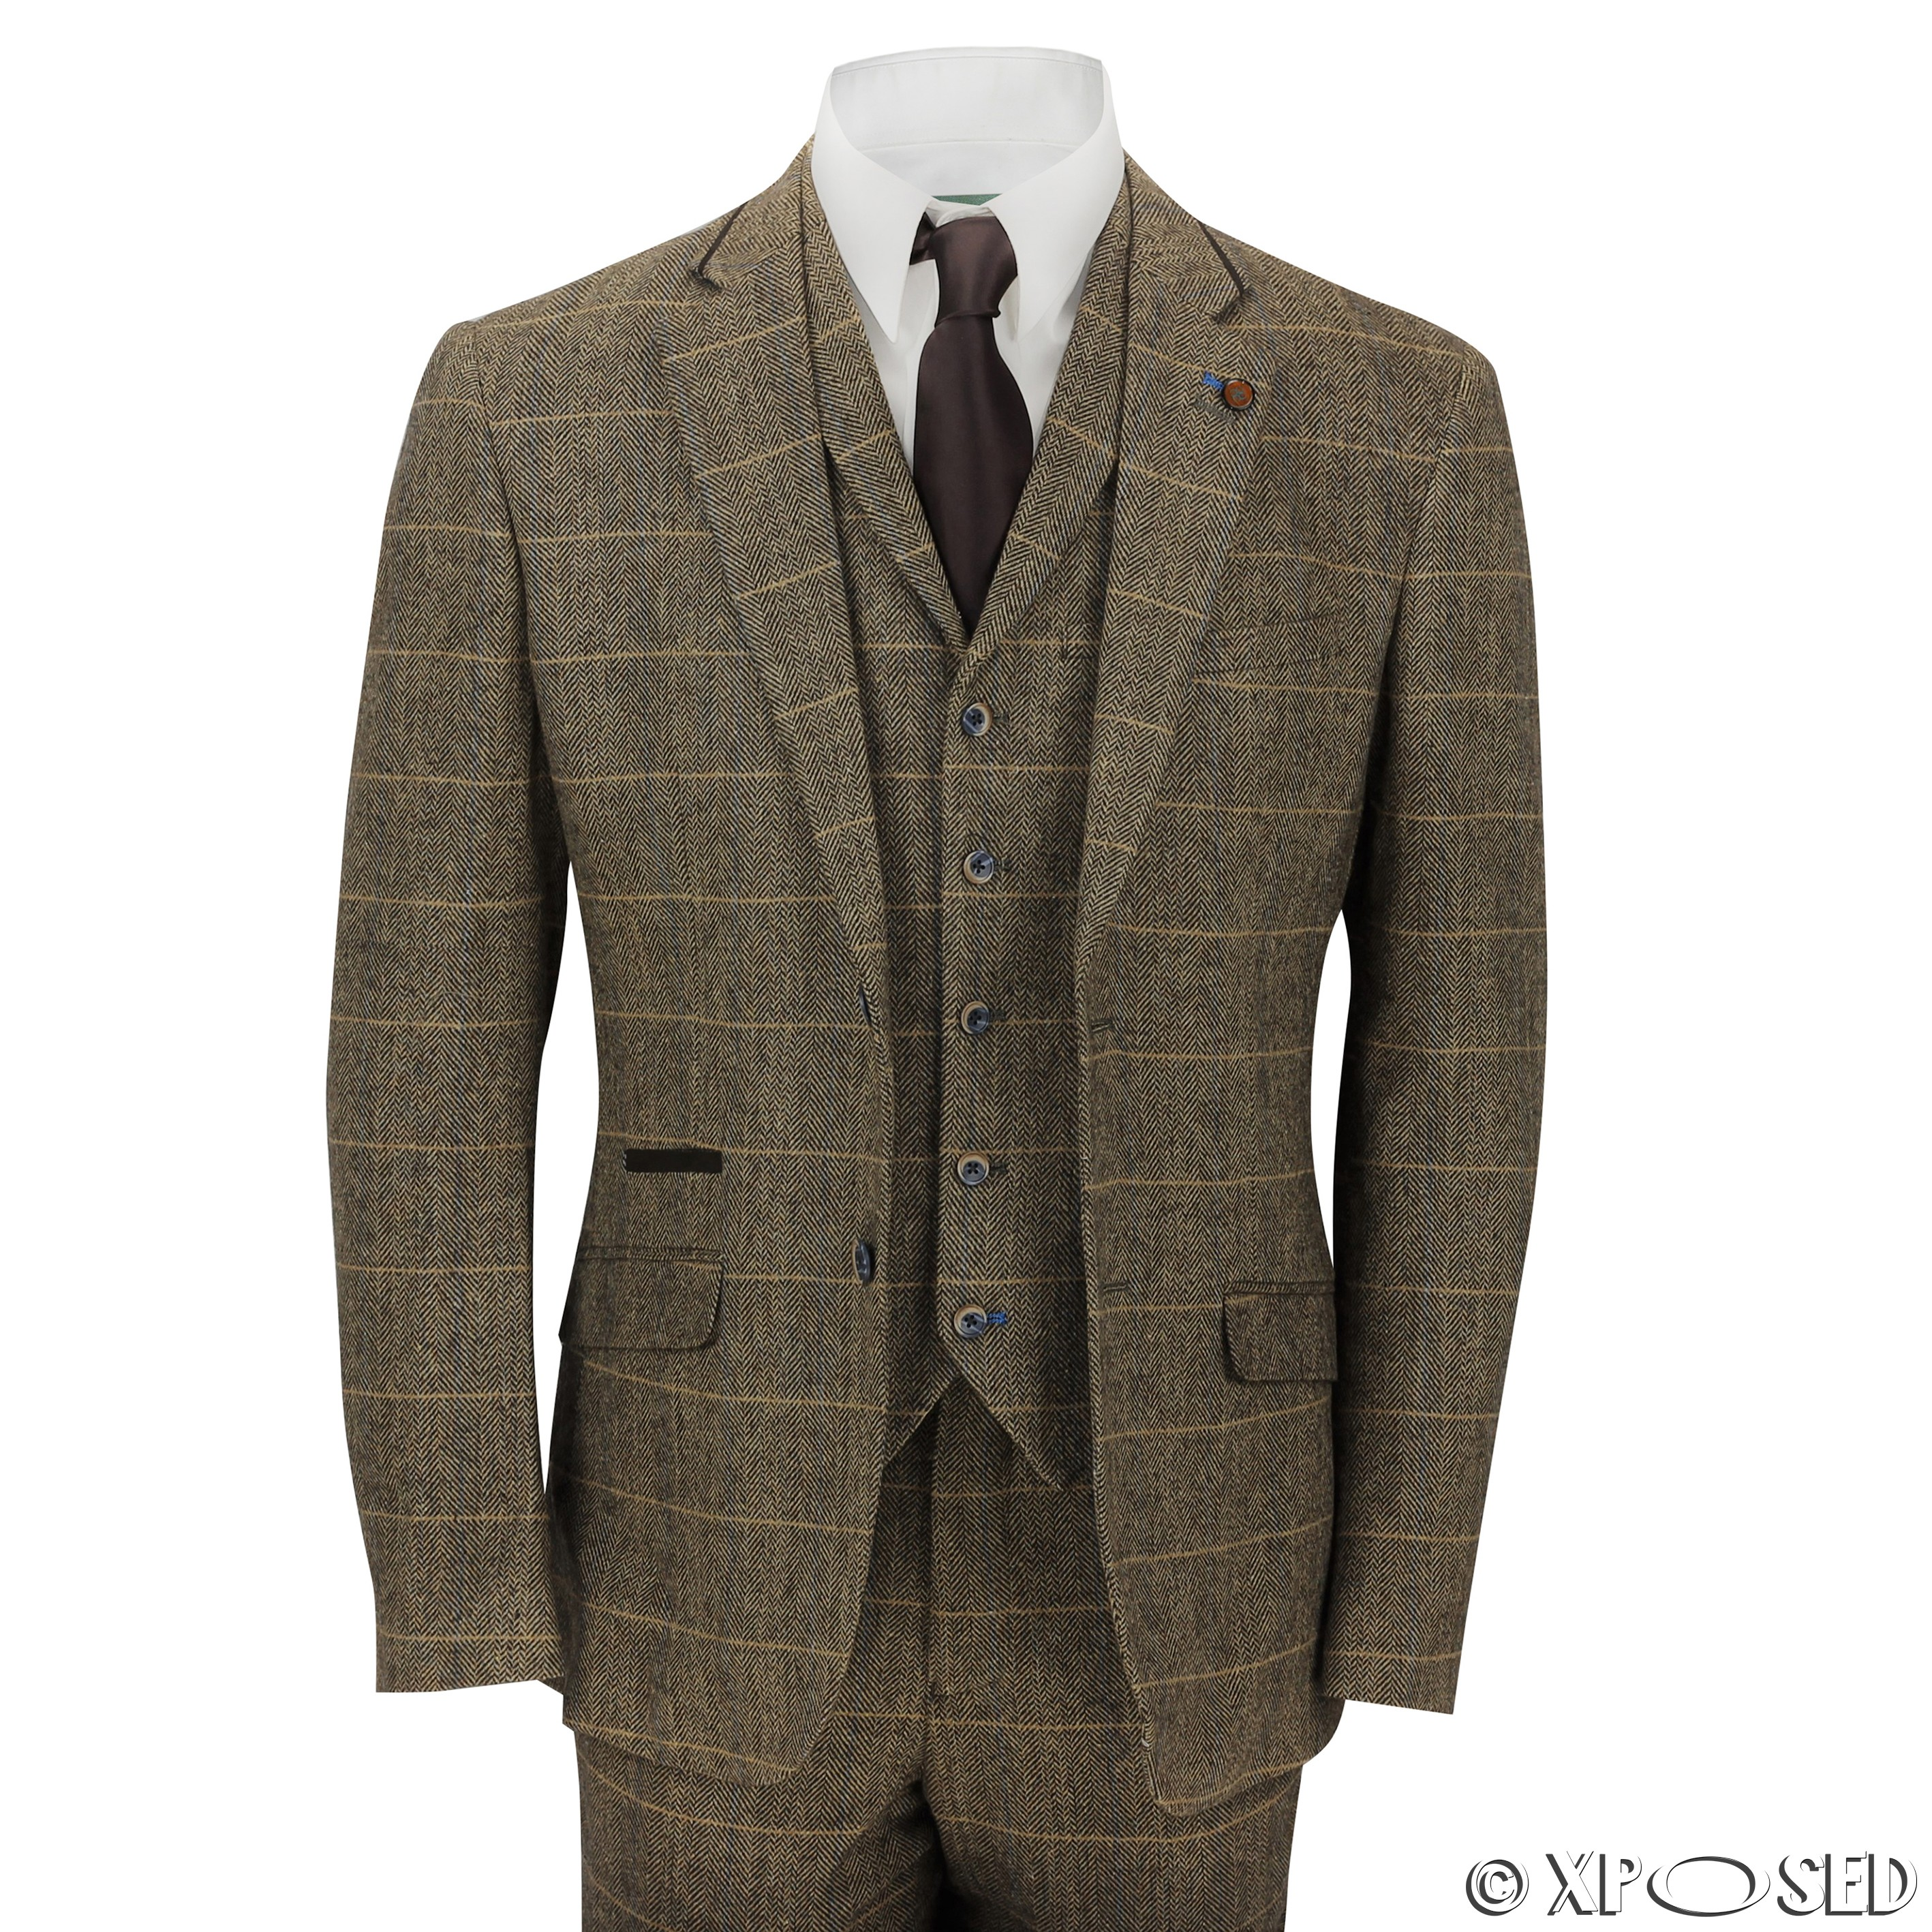 New Mens 3 Piece Tweed Suit Vintage Tan Brown Herringbone Check ...